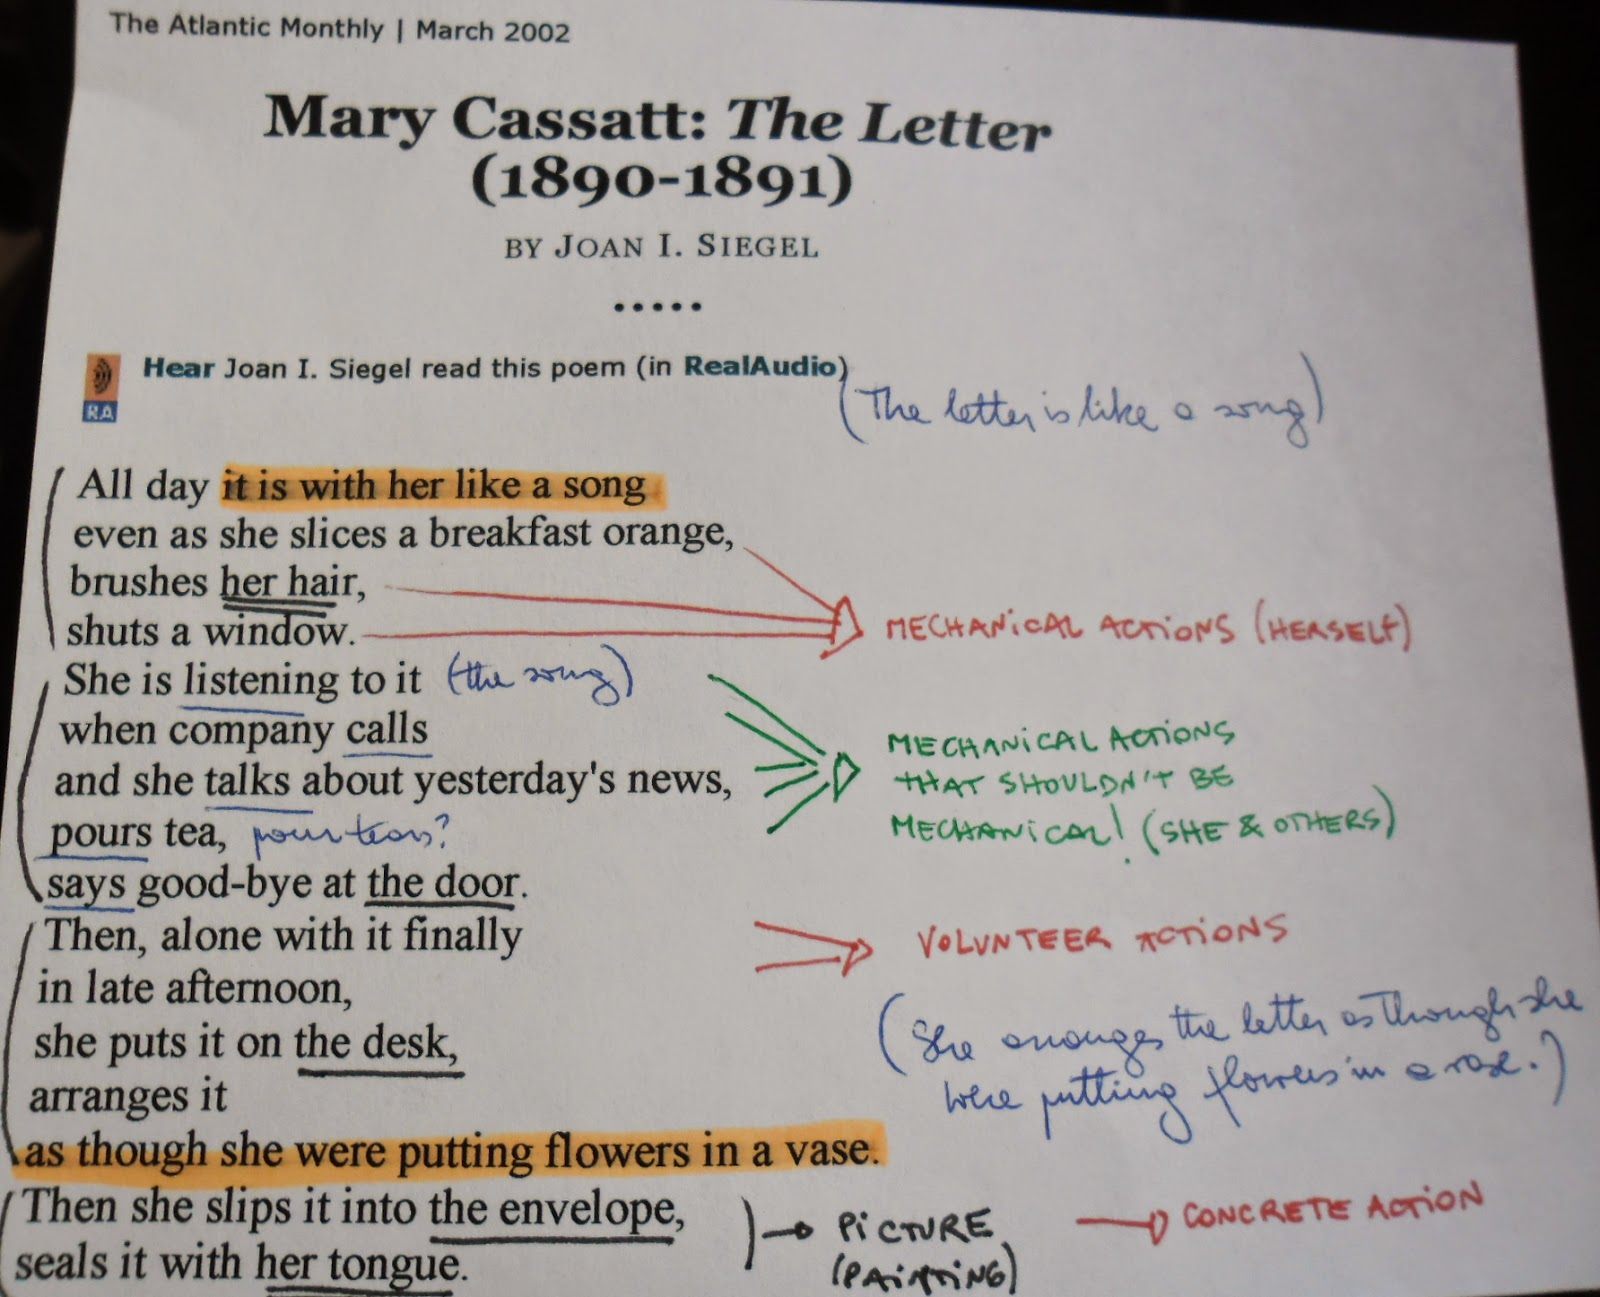 Essay on mary cassatt